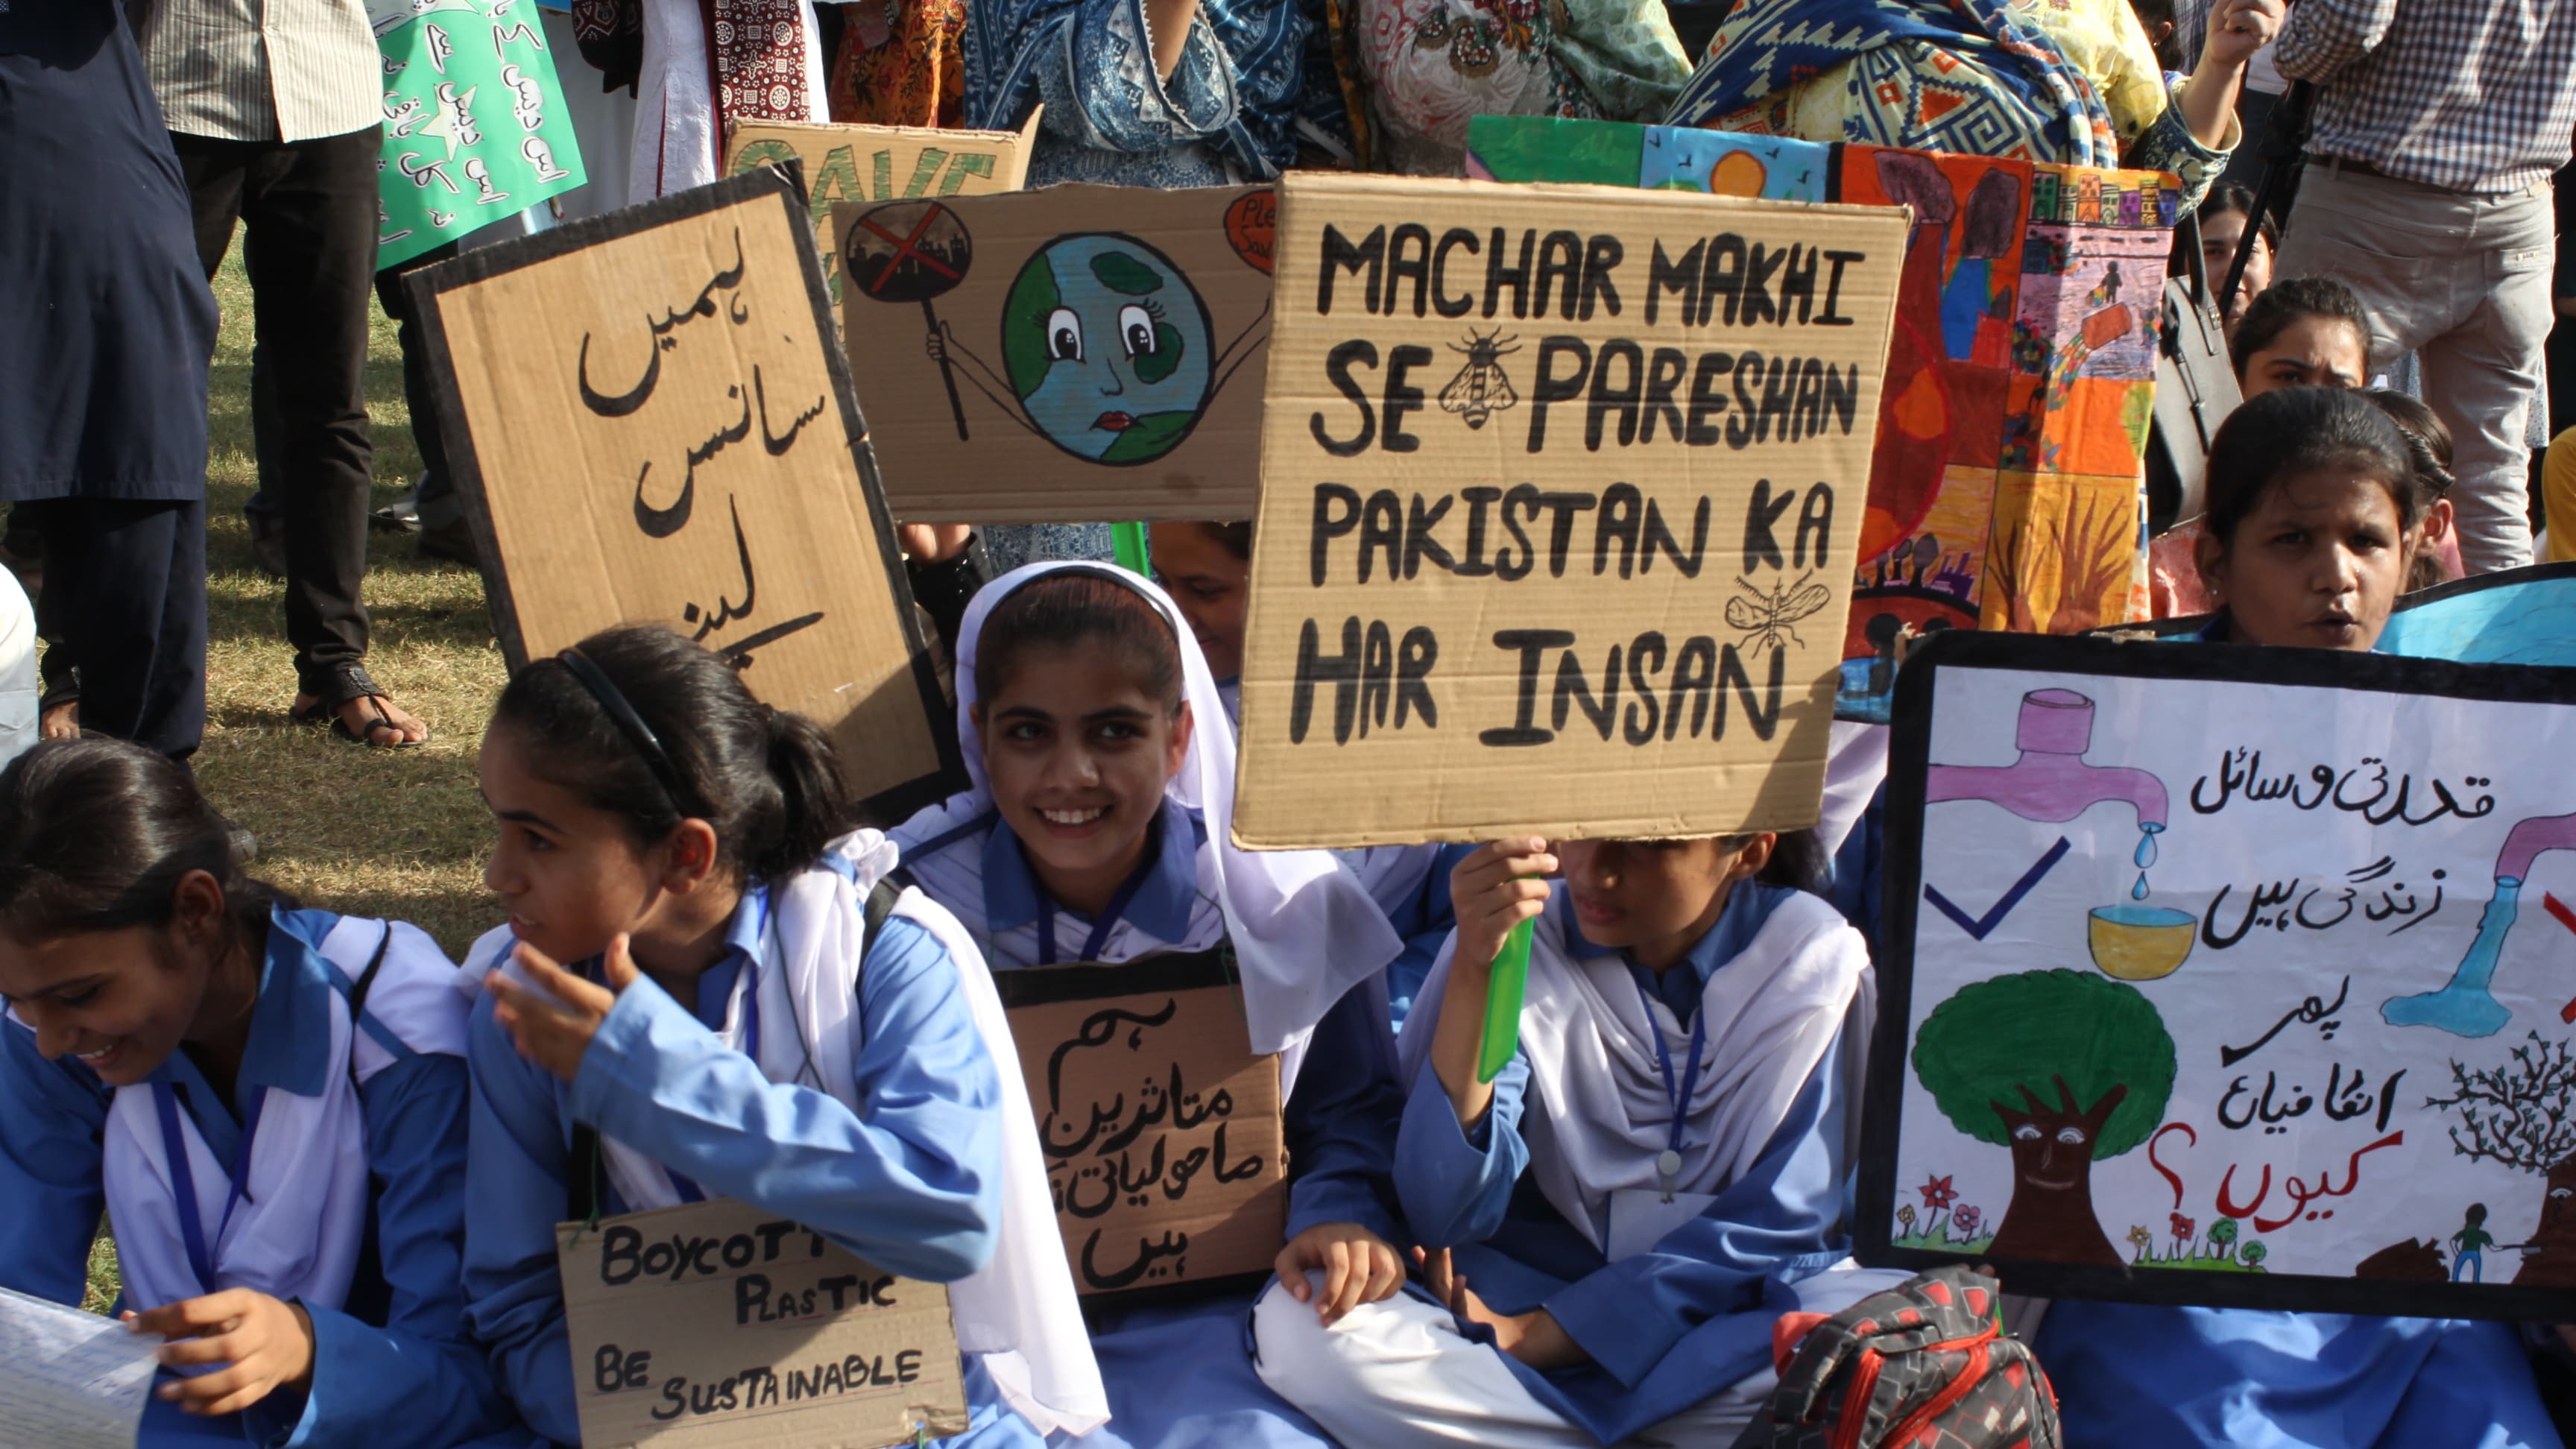 Students at the climate march in Karachi on Friday. — Photo by Kamran Nafees